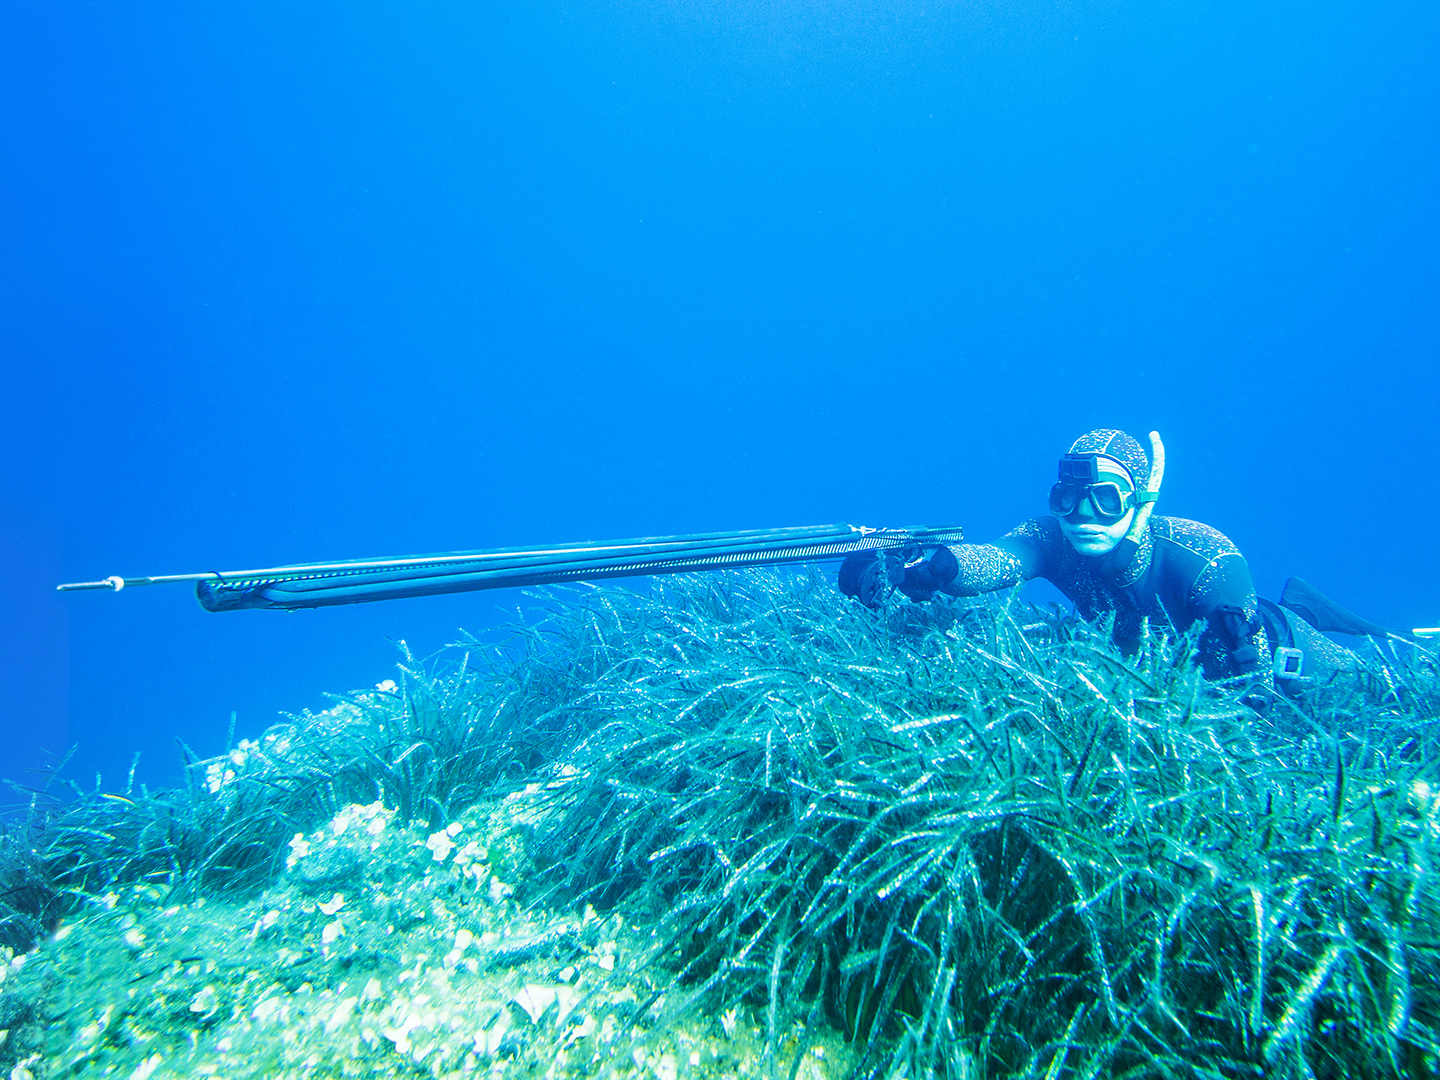 Image of a someone spearfishing on the sea bed.